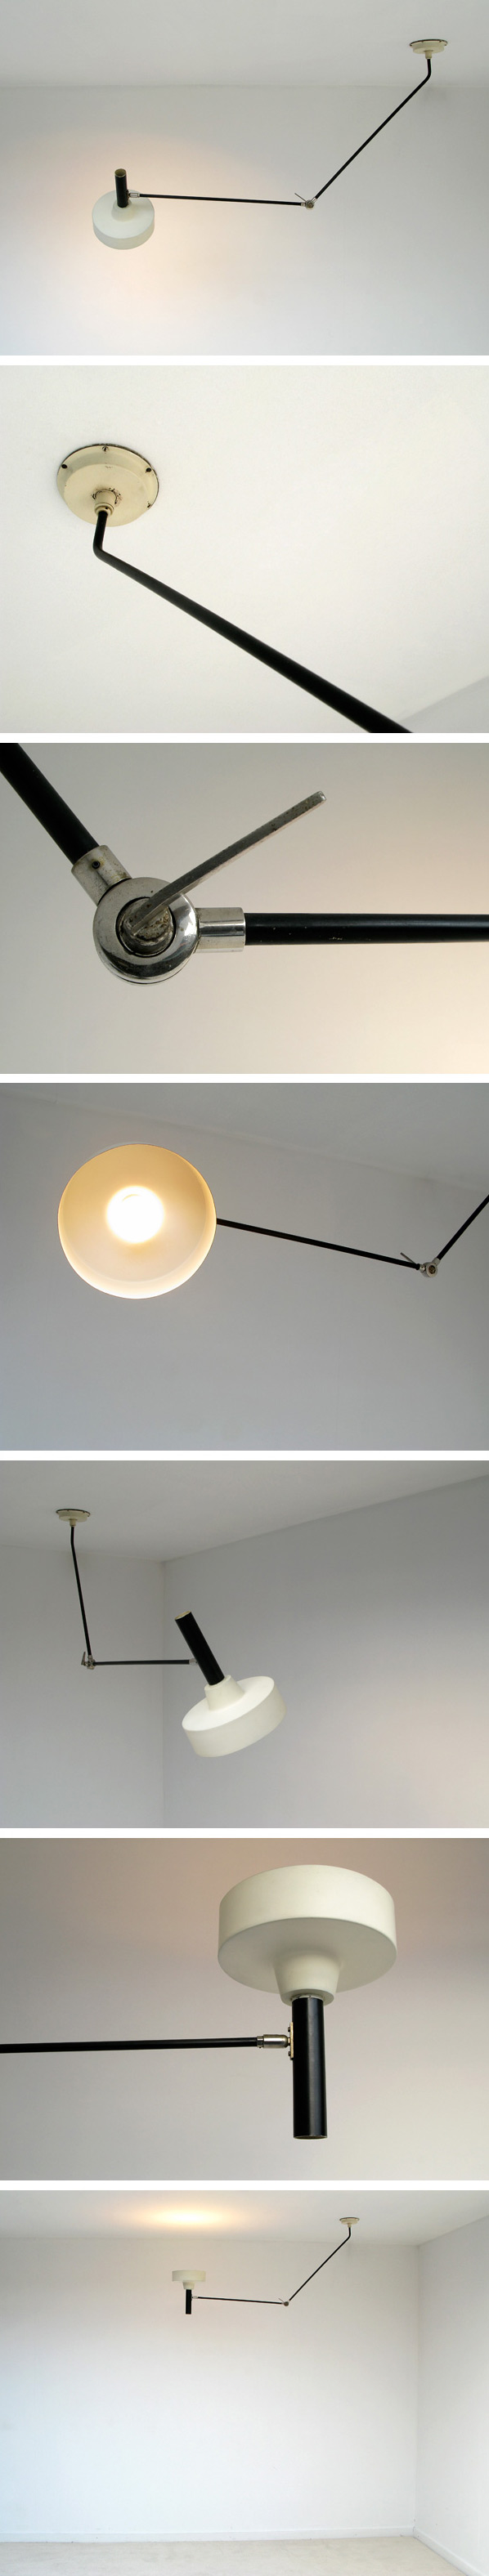 Hoogevorst Anvia industrial ceiling swing lamp Large